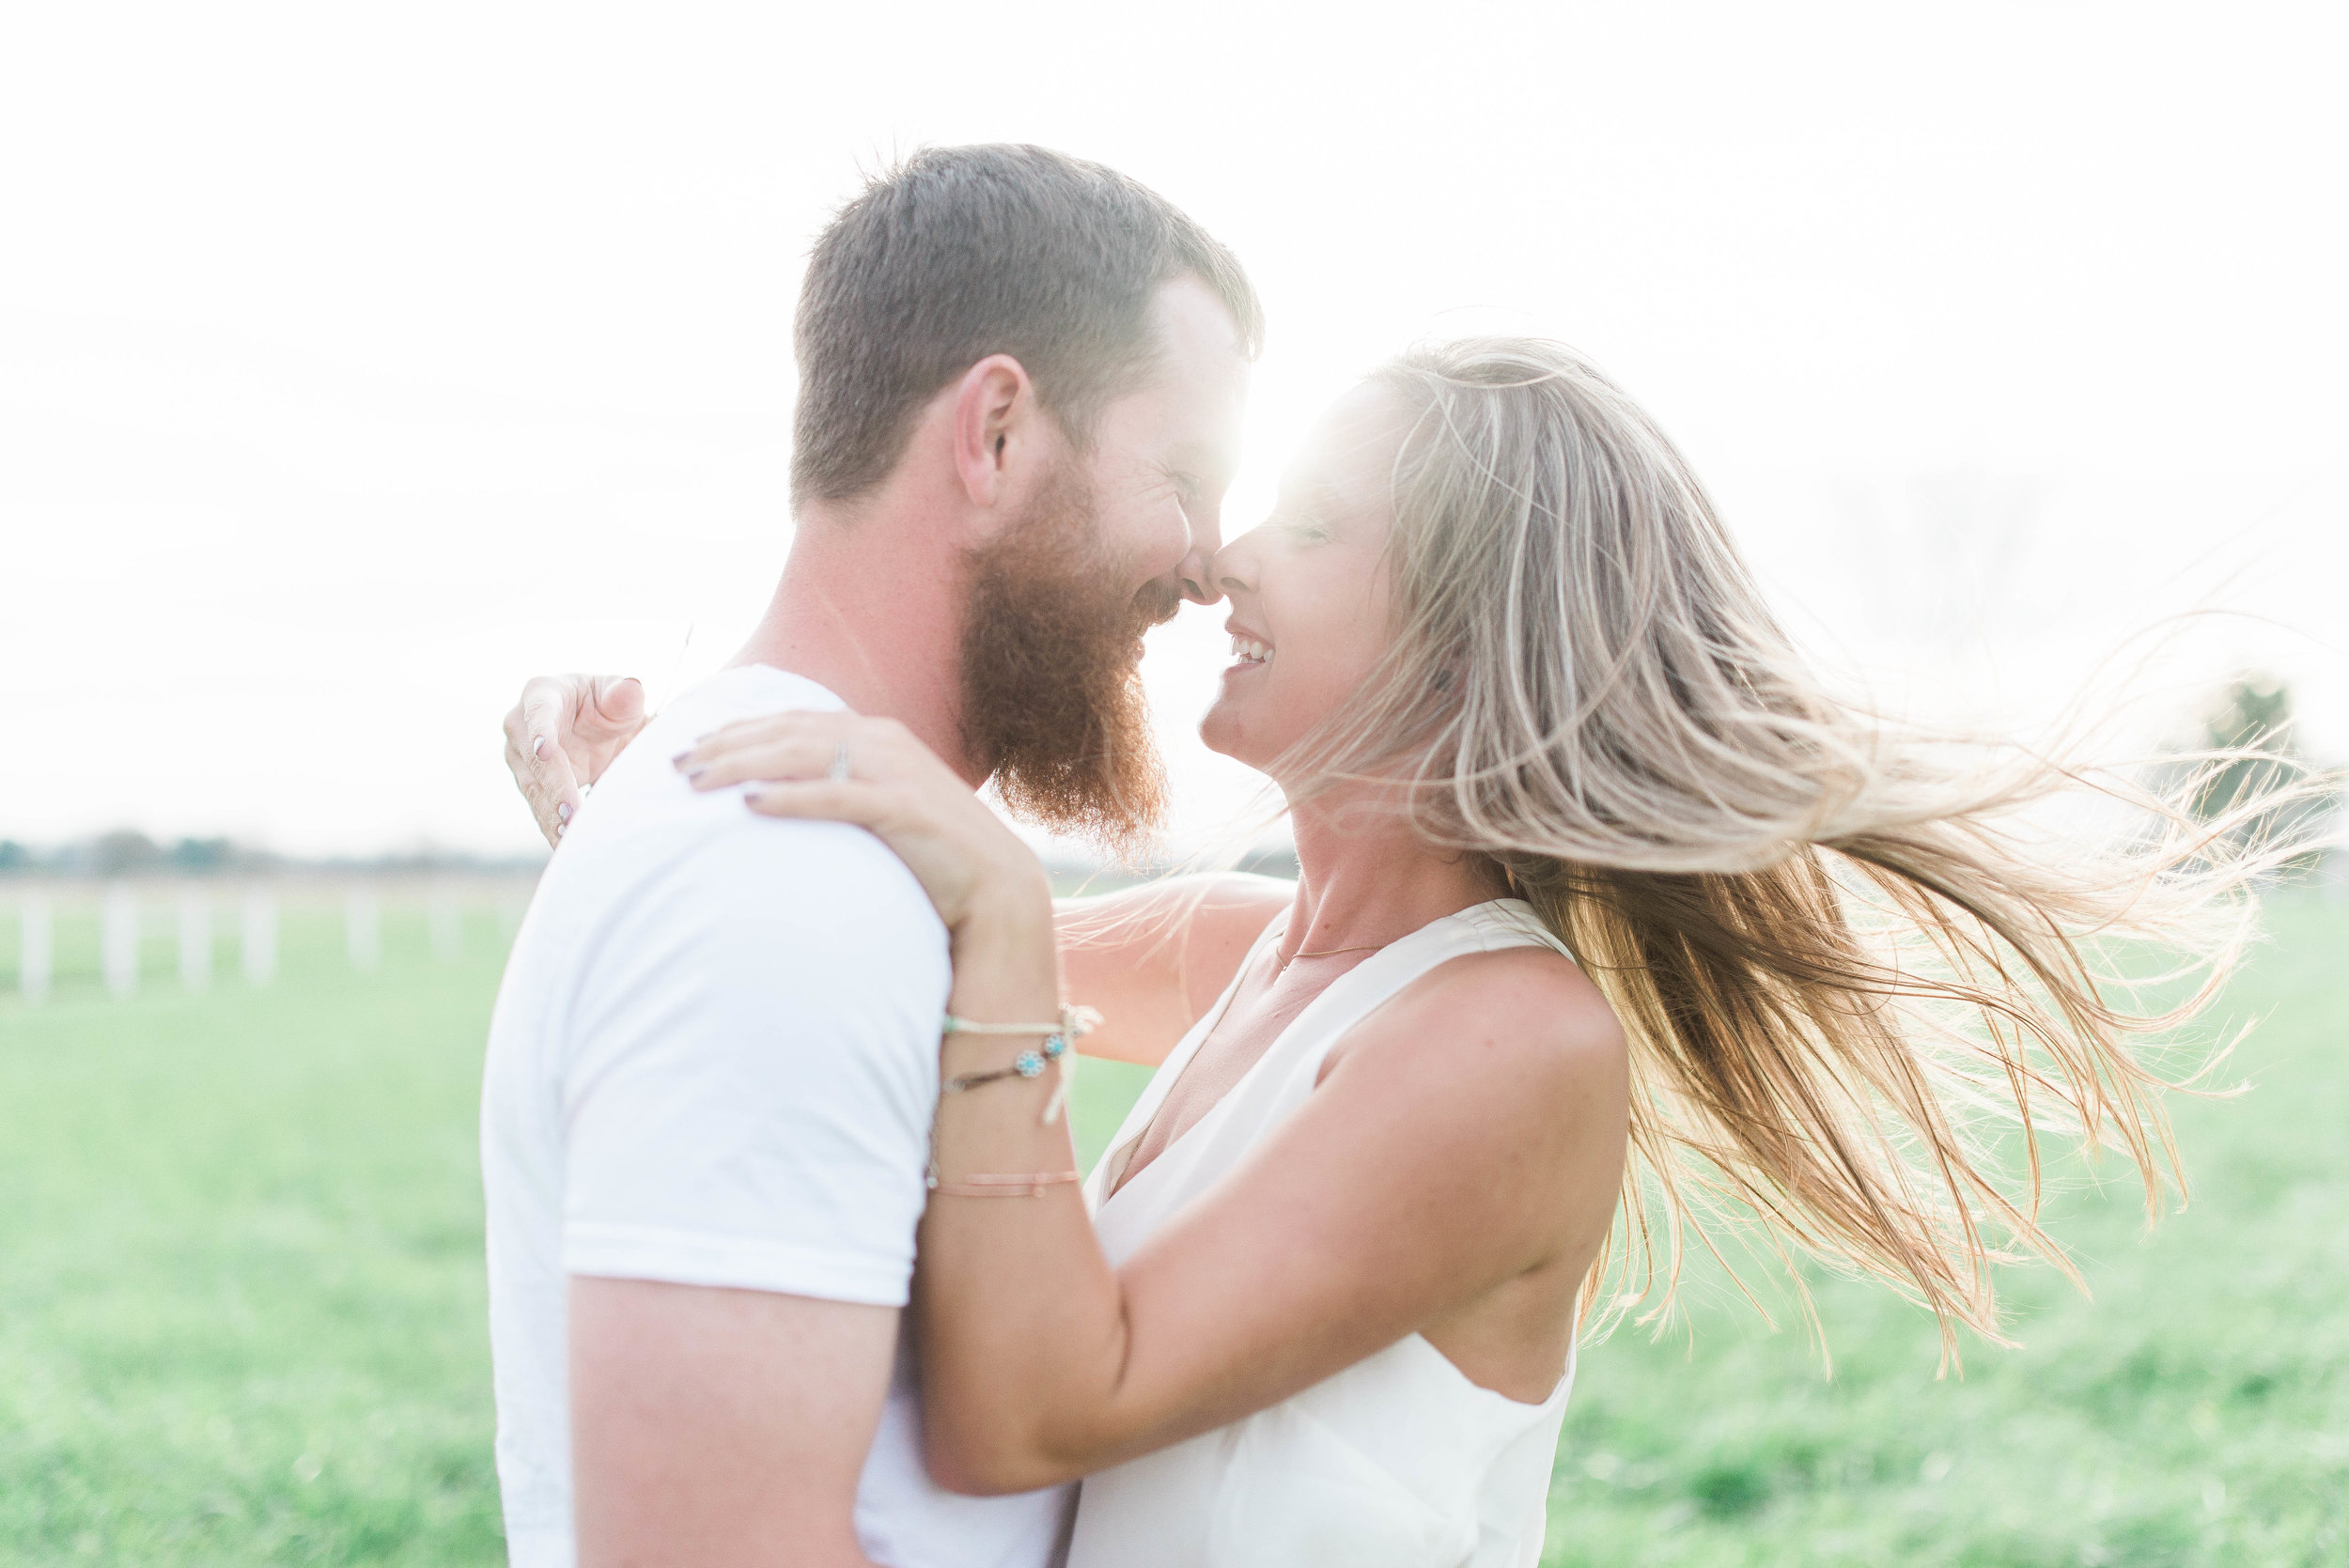 Destination Wedding Photographer based in Indianapolis, IN